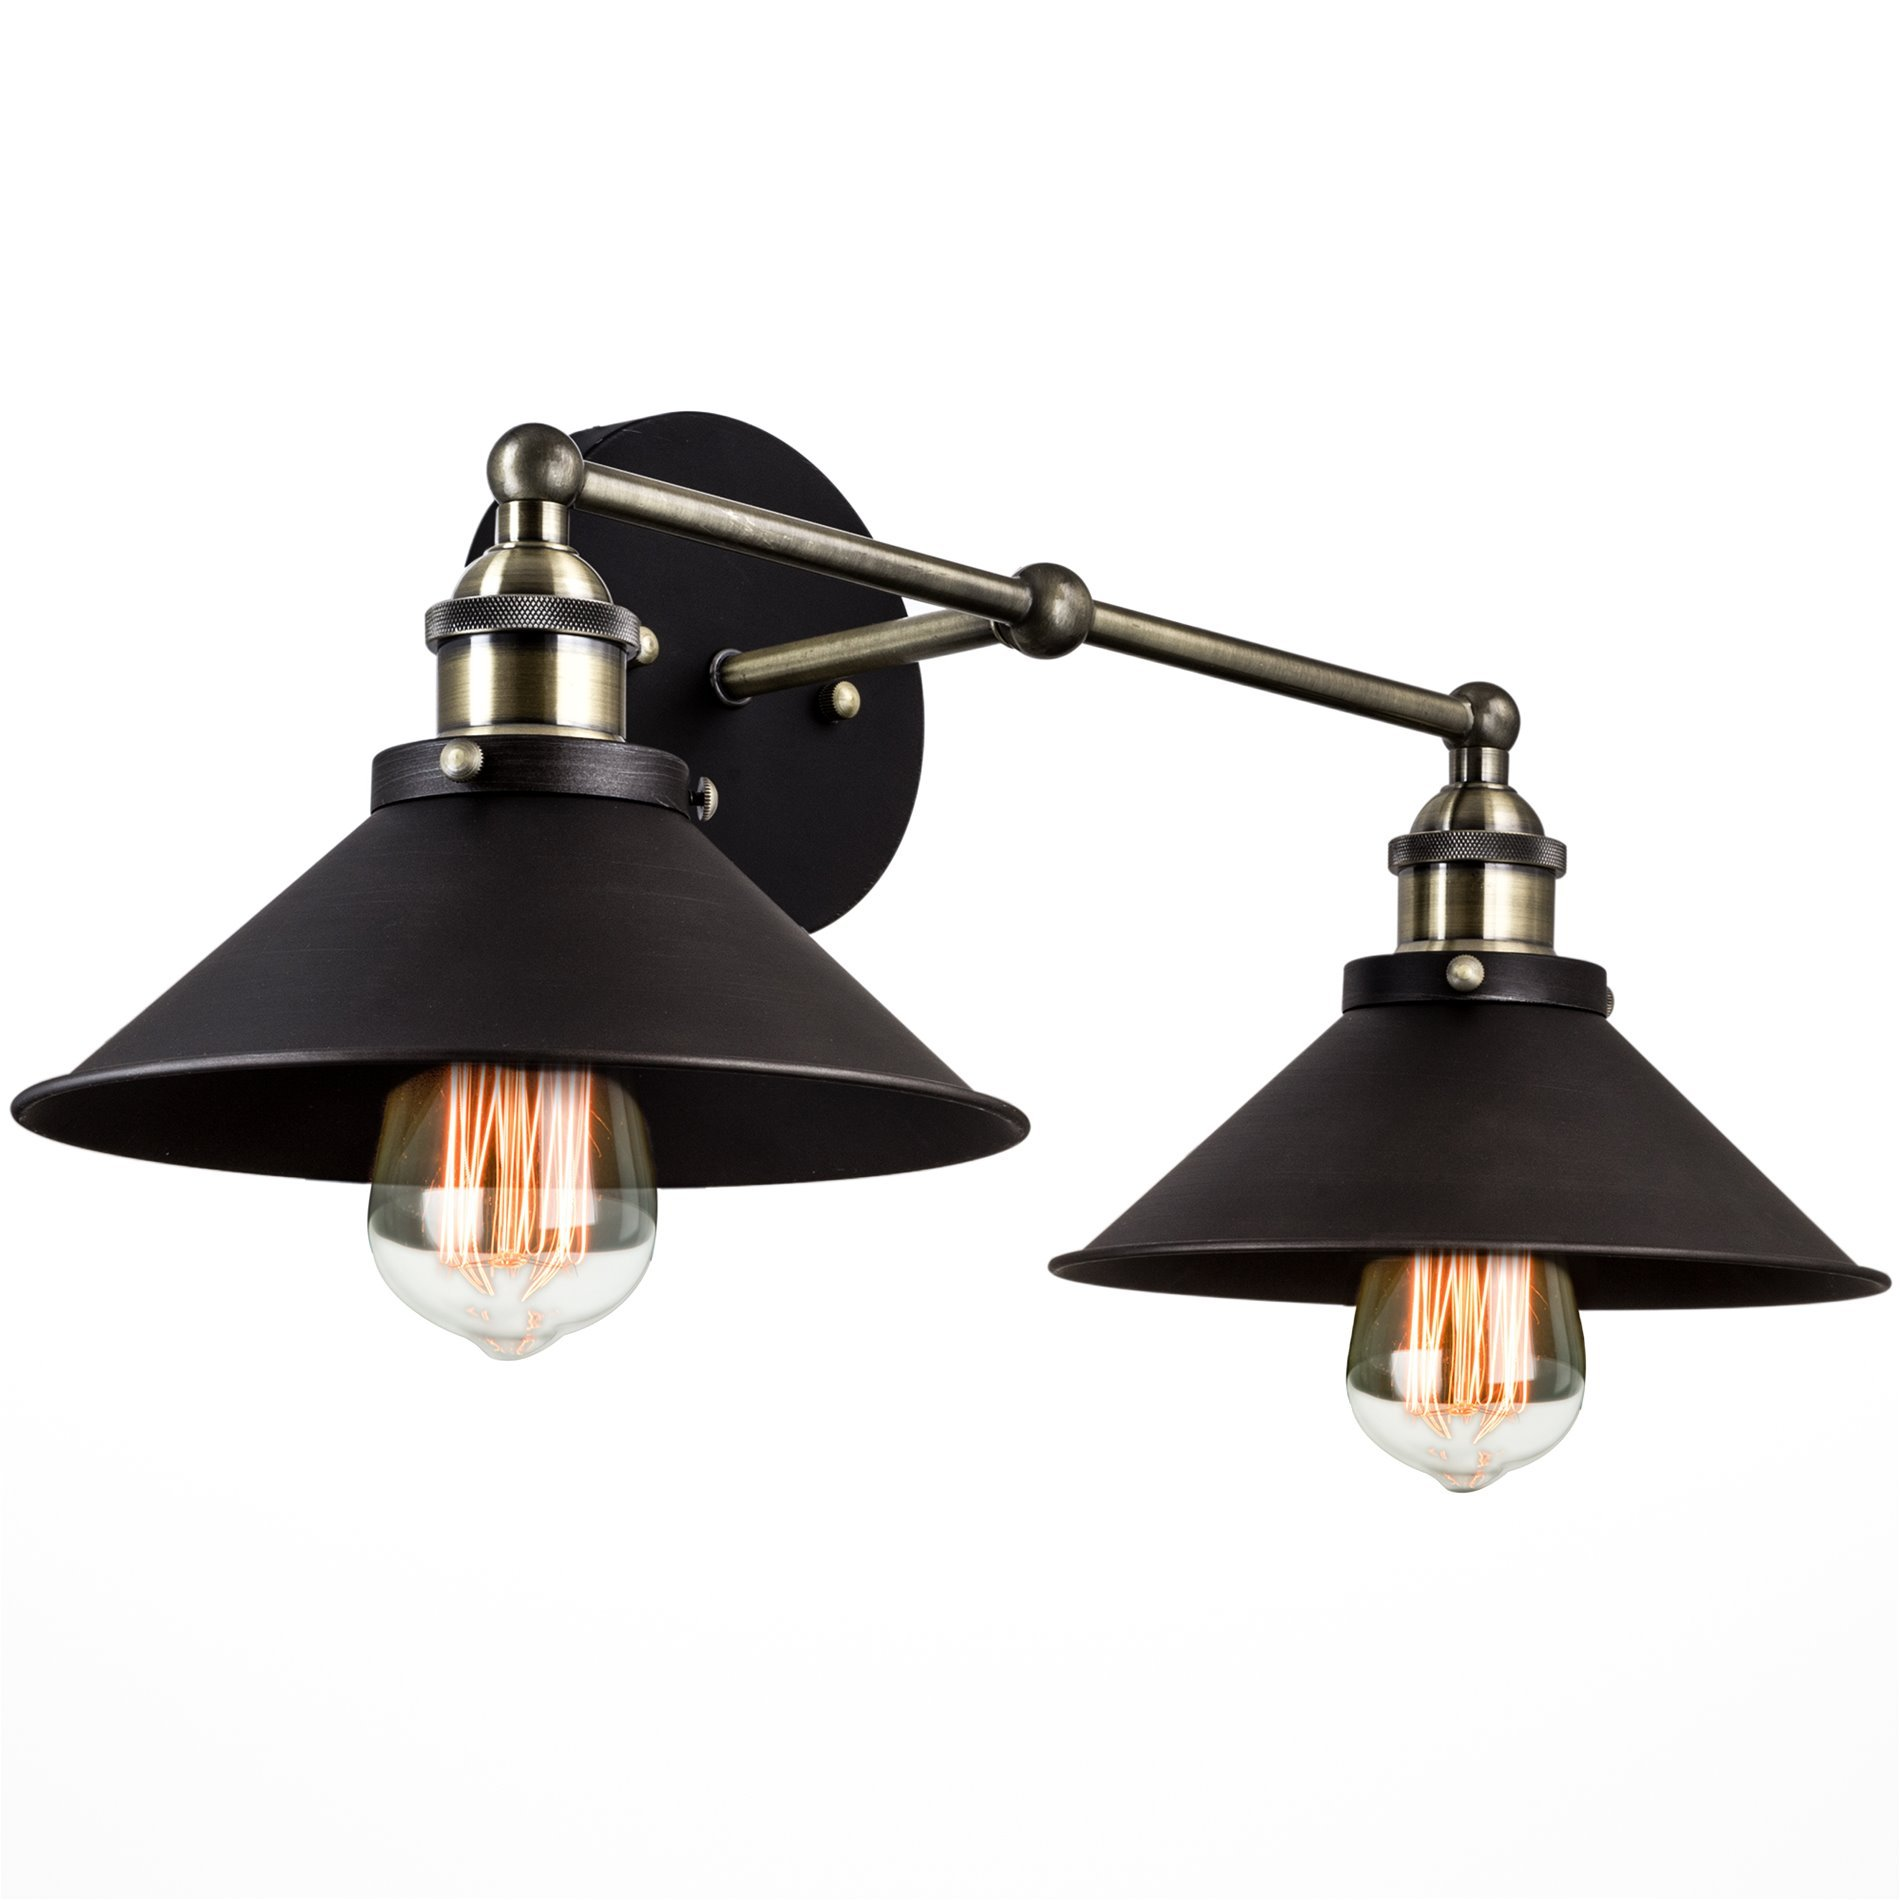 Kira Home Indie 19'' Mid-Century Industrial 2-Light Black Wall Sconce, Brushed Black Finish